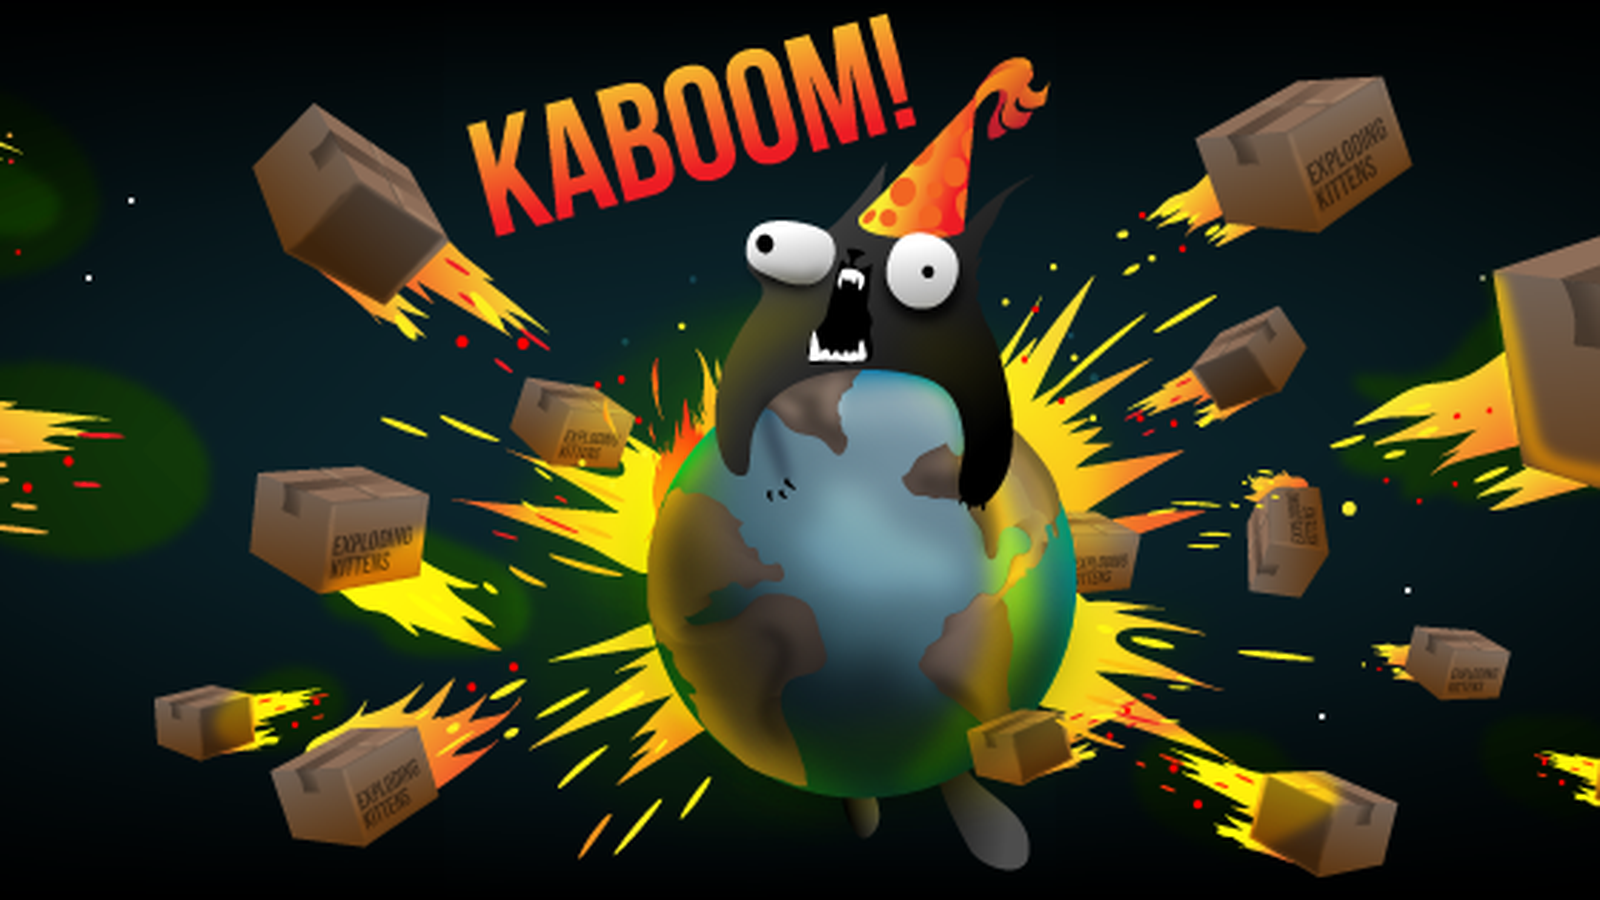 The Oatmeal S Exploding Kittens Card Game Is Now Available On Iphone Exploding Kittens Card Game Exploding Kittens Cute Kitten Gif